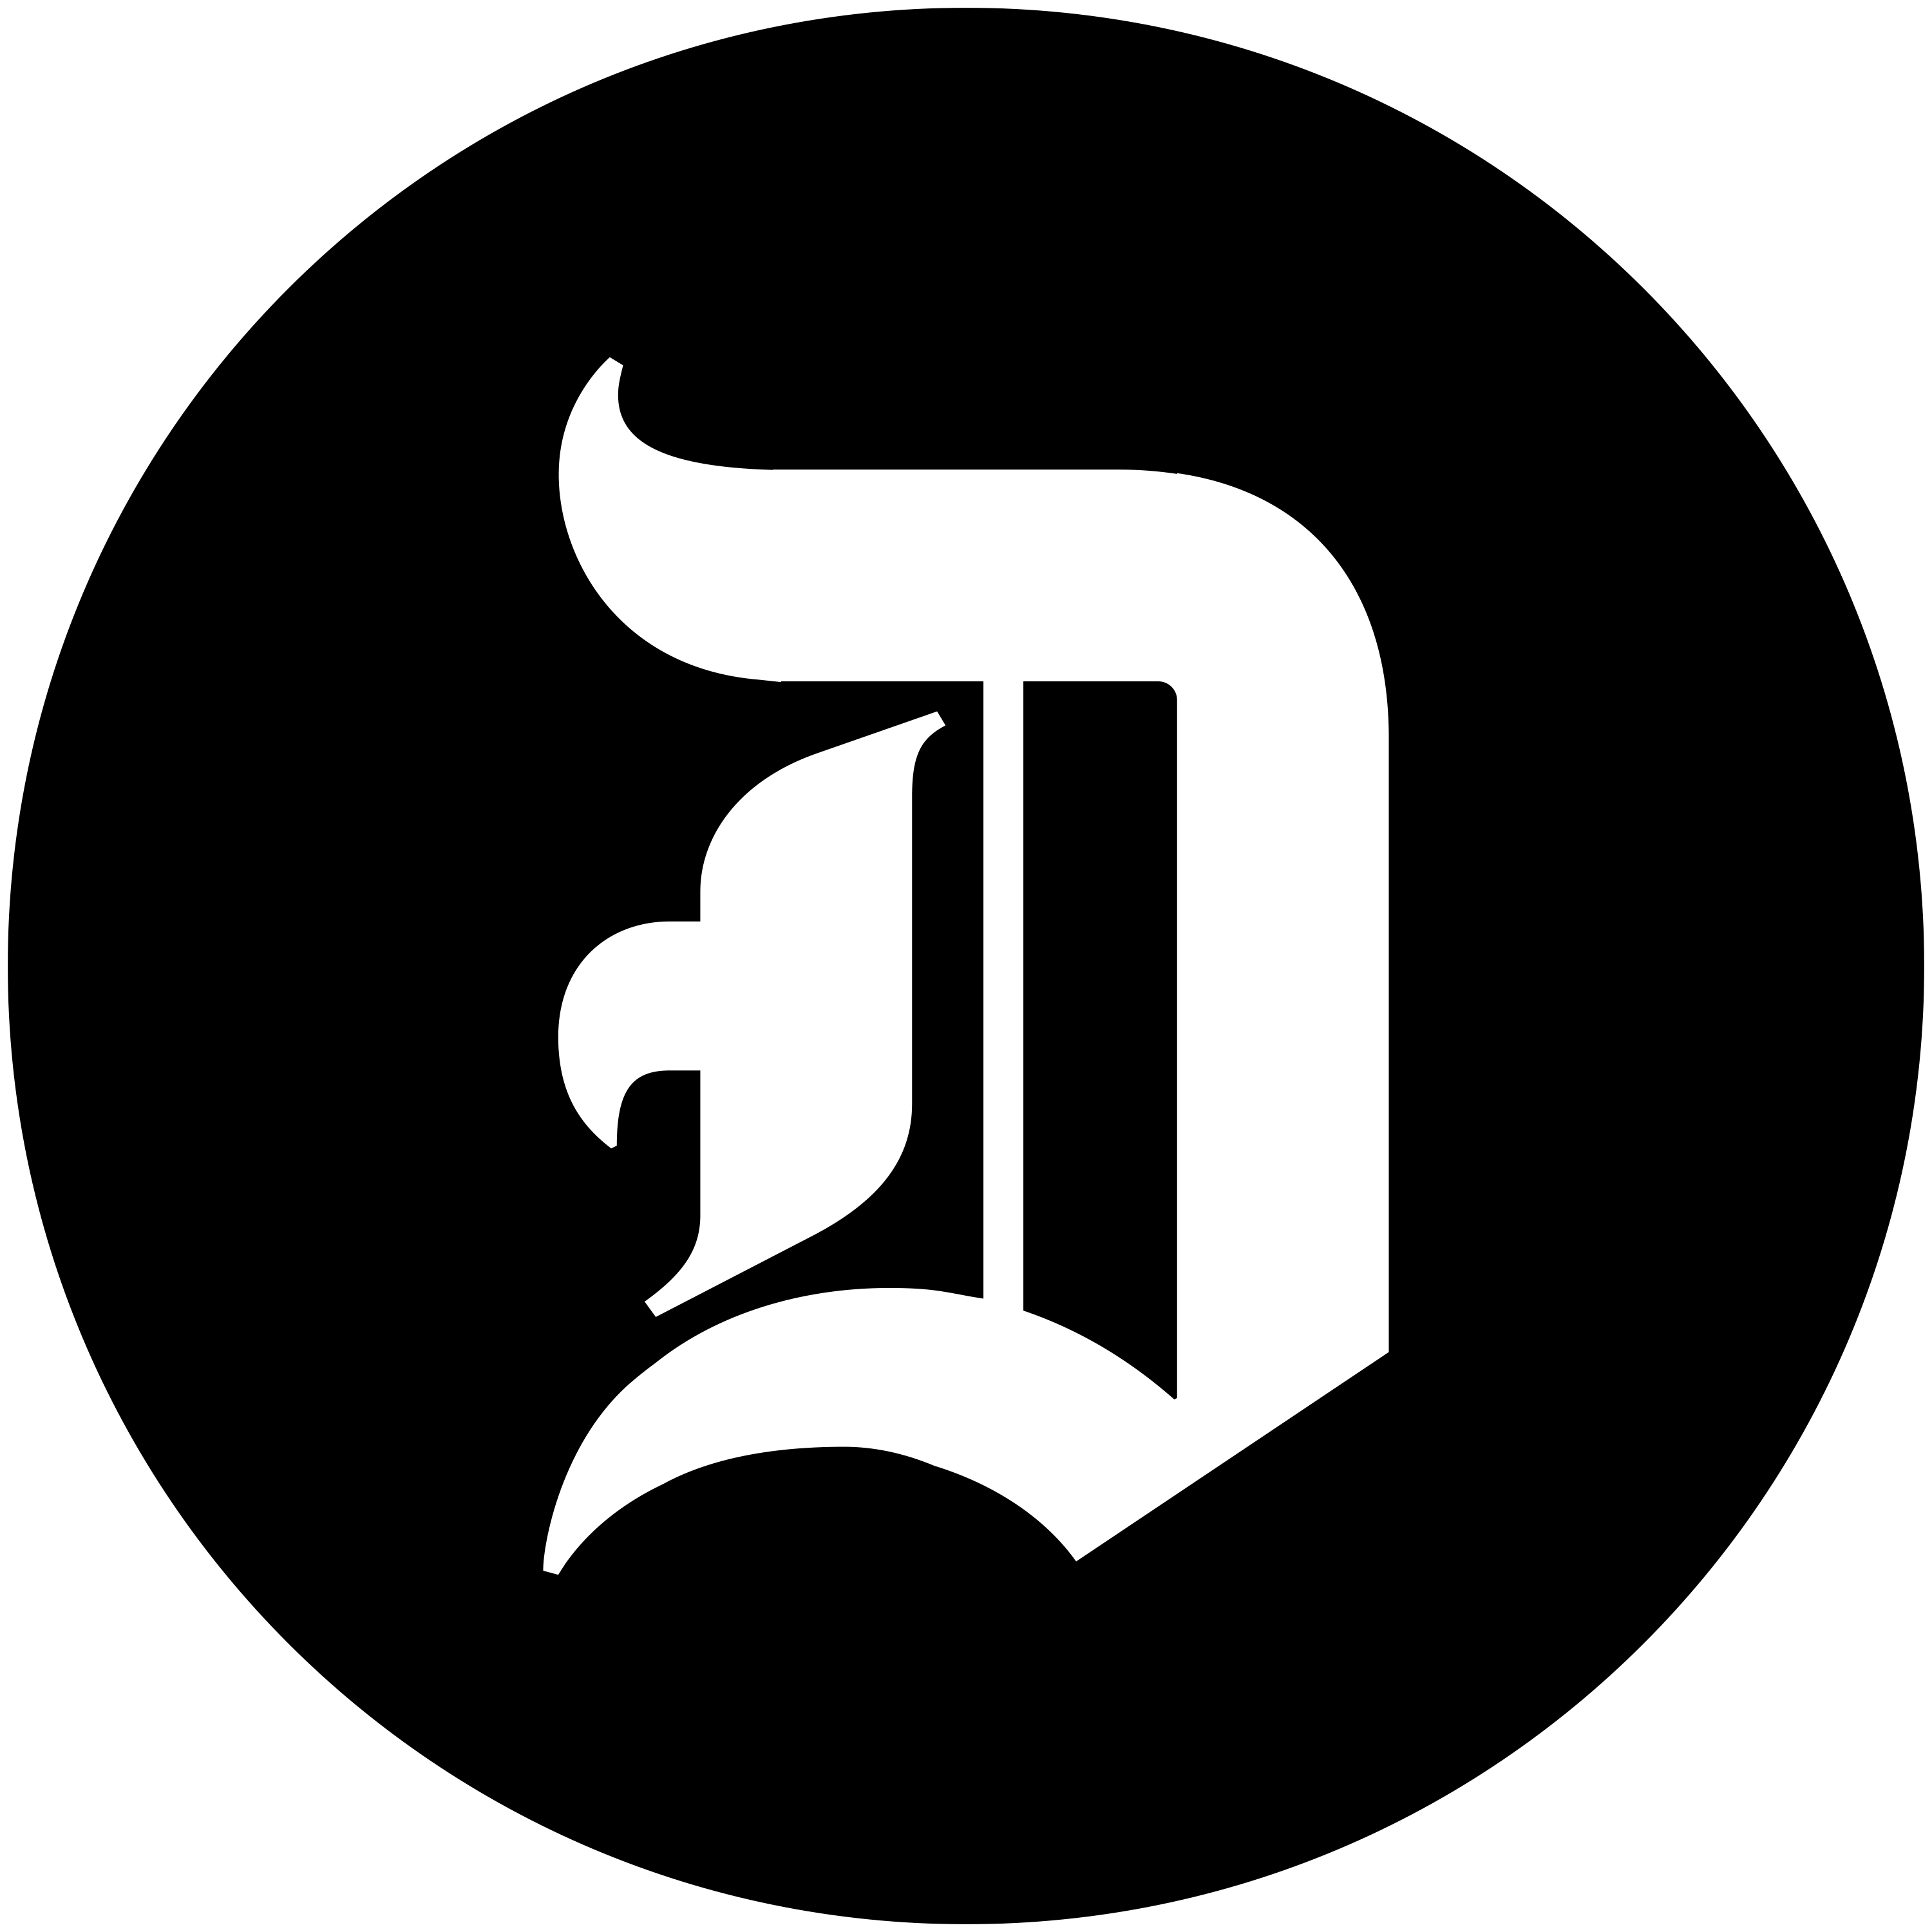 the daily dot your internet your internet news